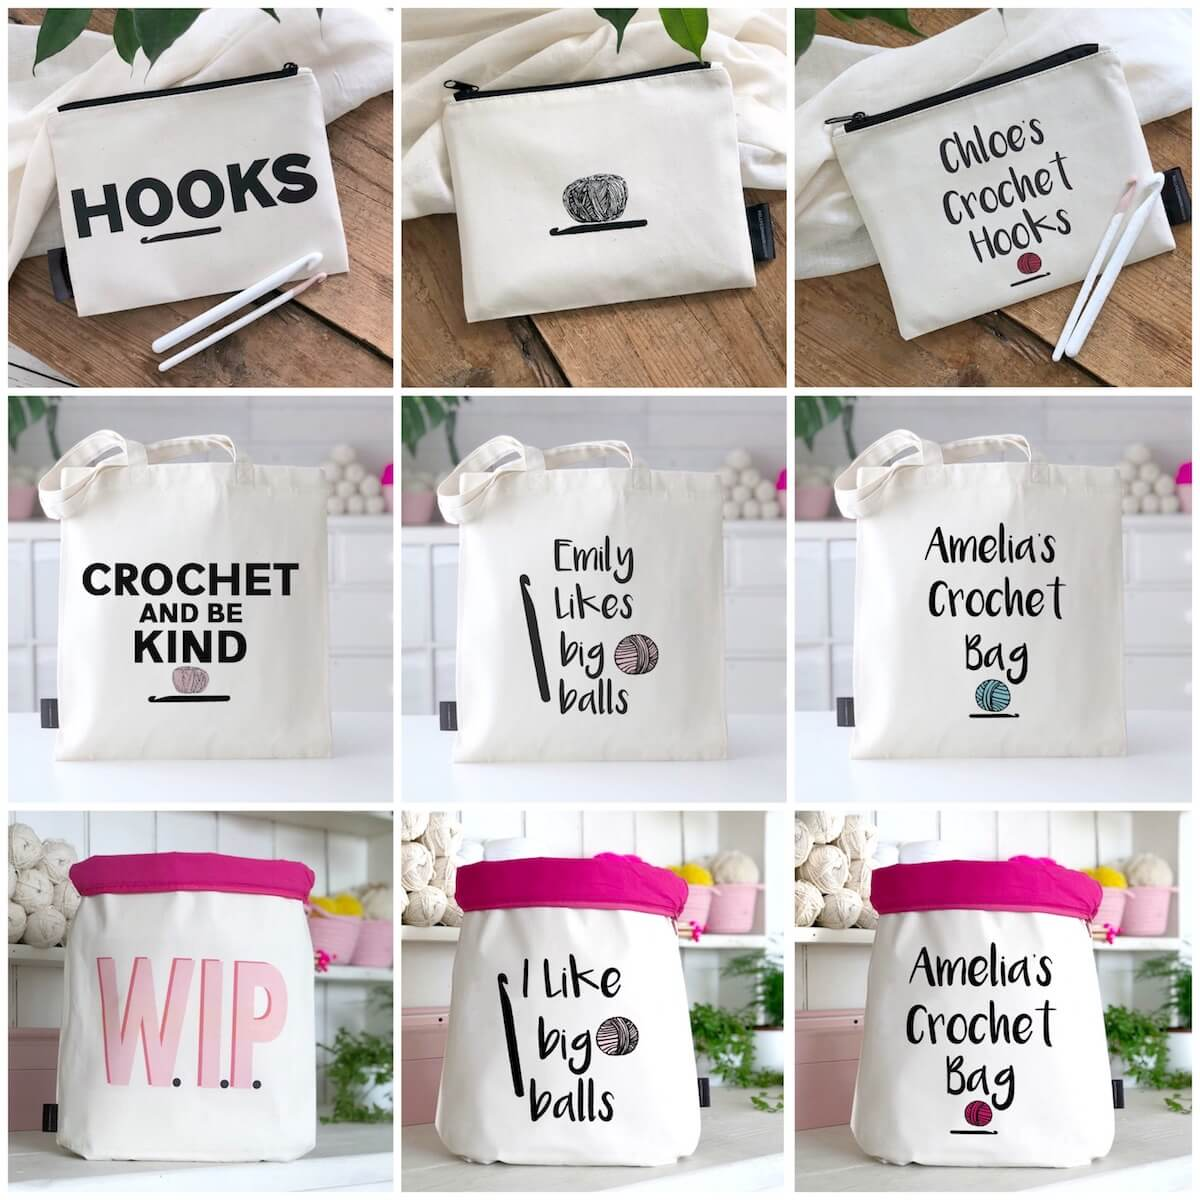 unique crochet gifts - personalized crochet hook bags and crochet project bags